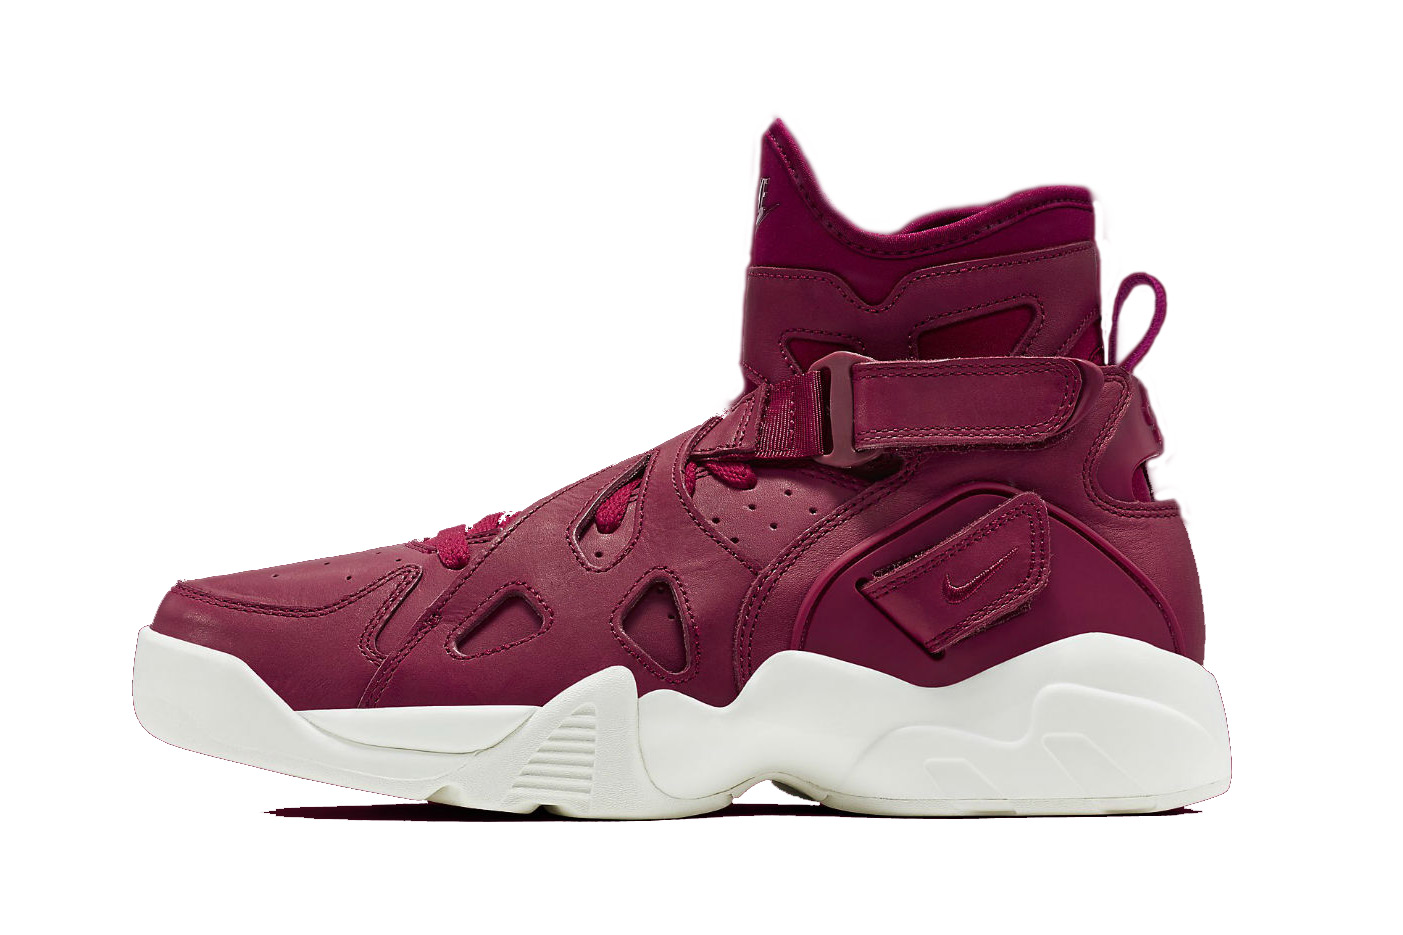 Nike's Air Unlimited Silhouette Will Don Two Brand New Colorways for This Fall